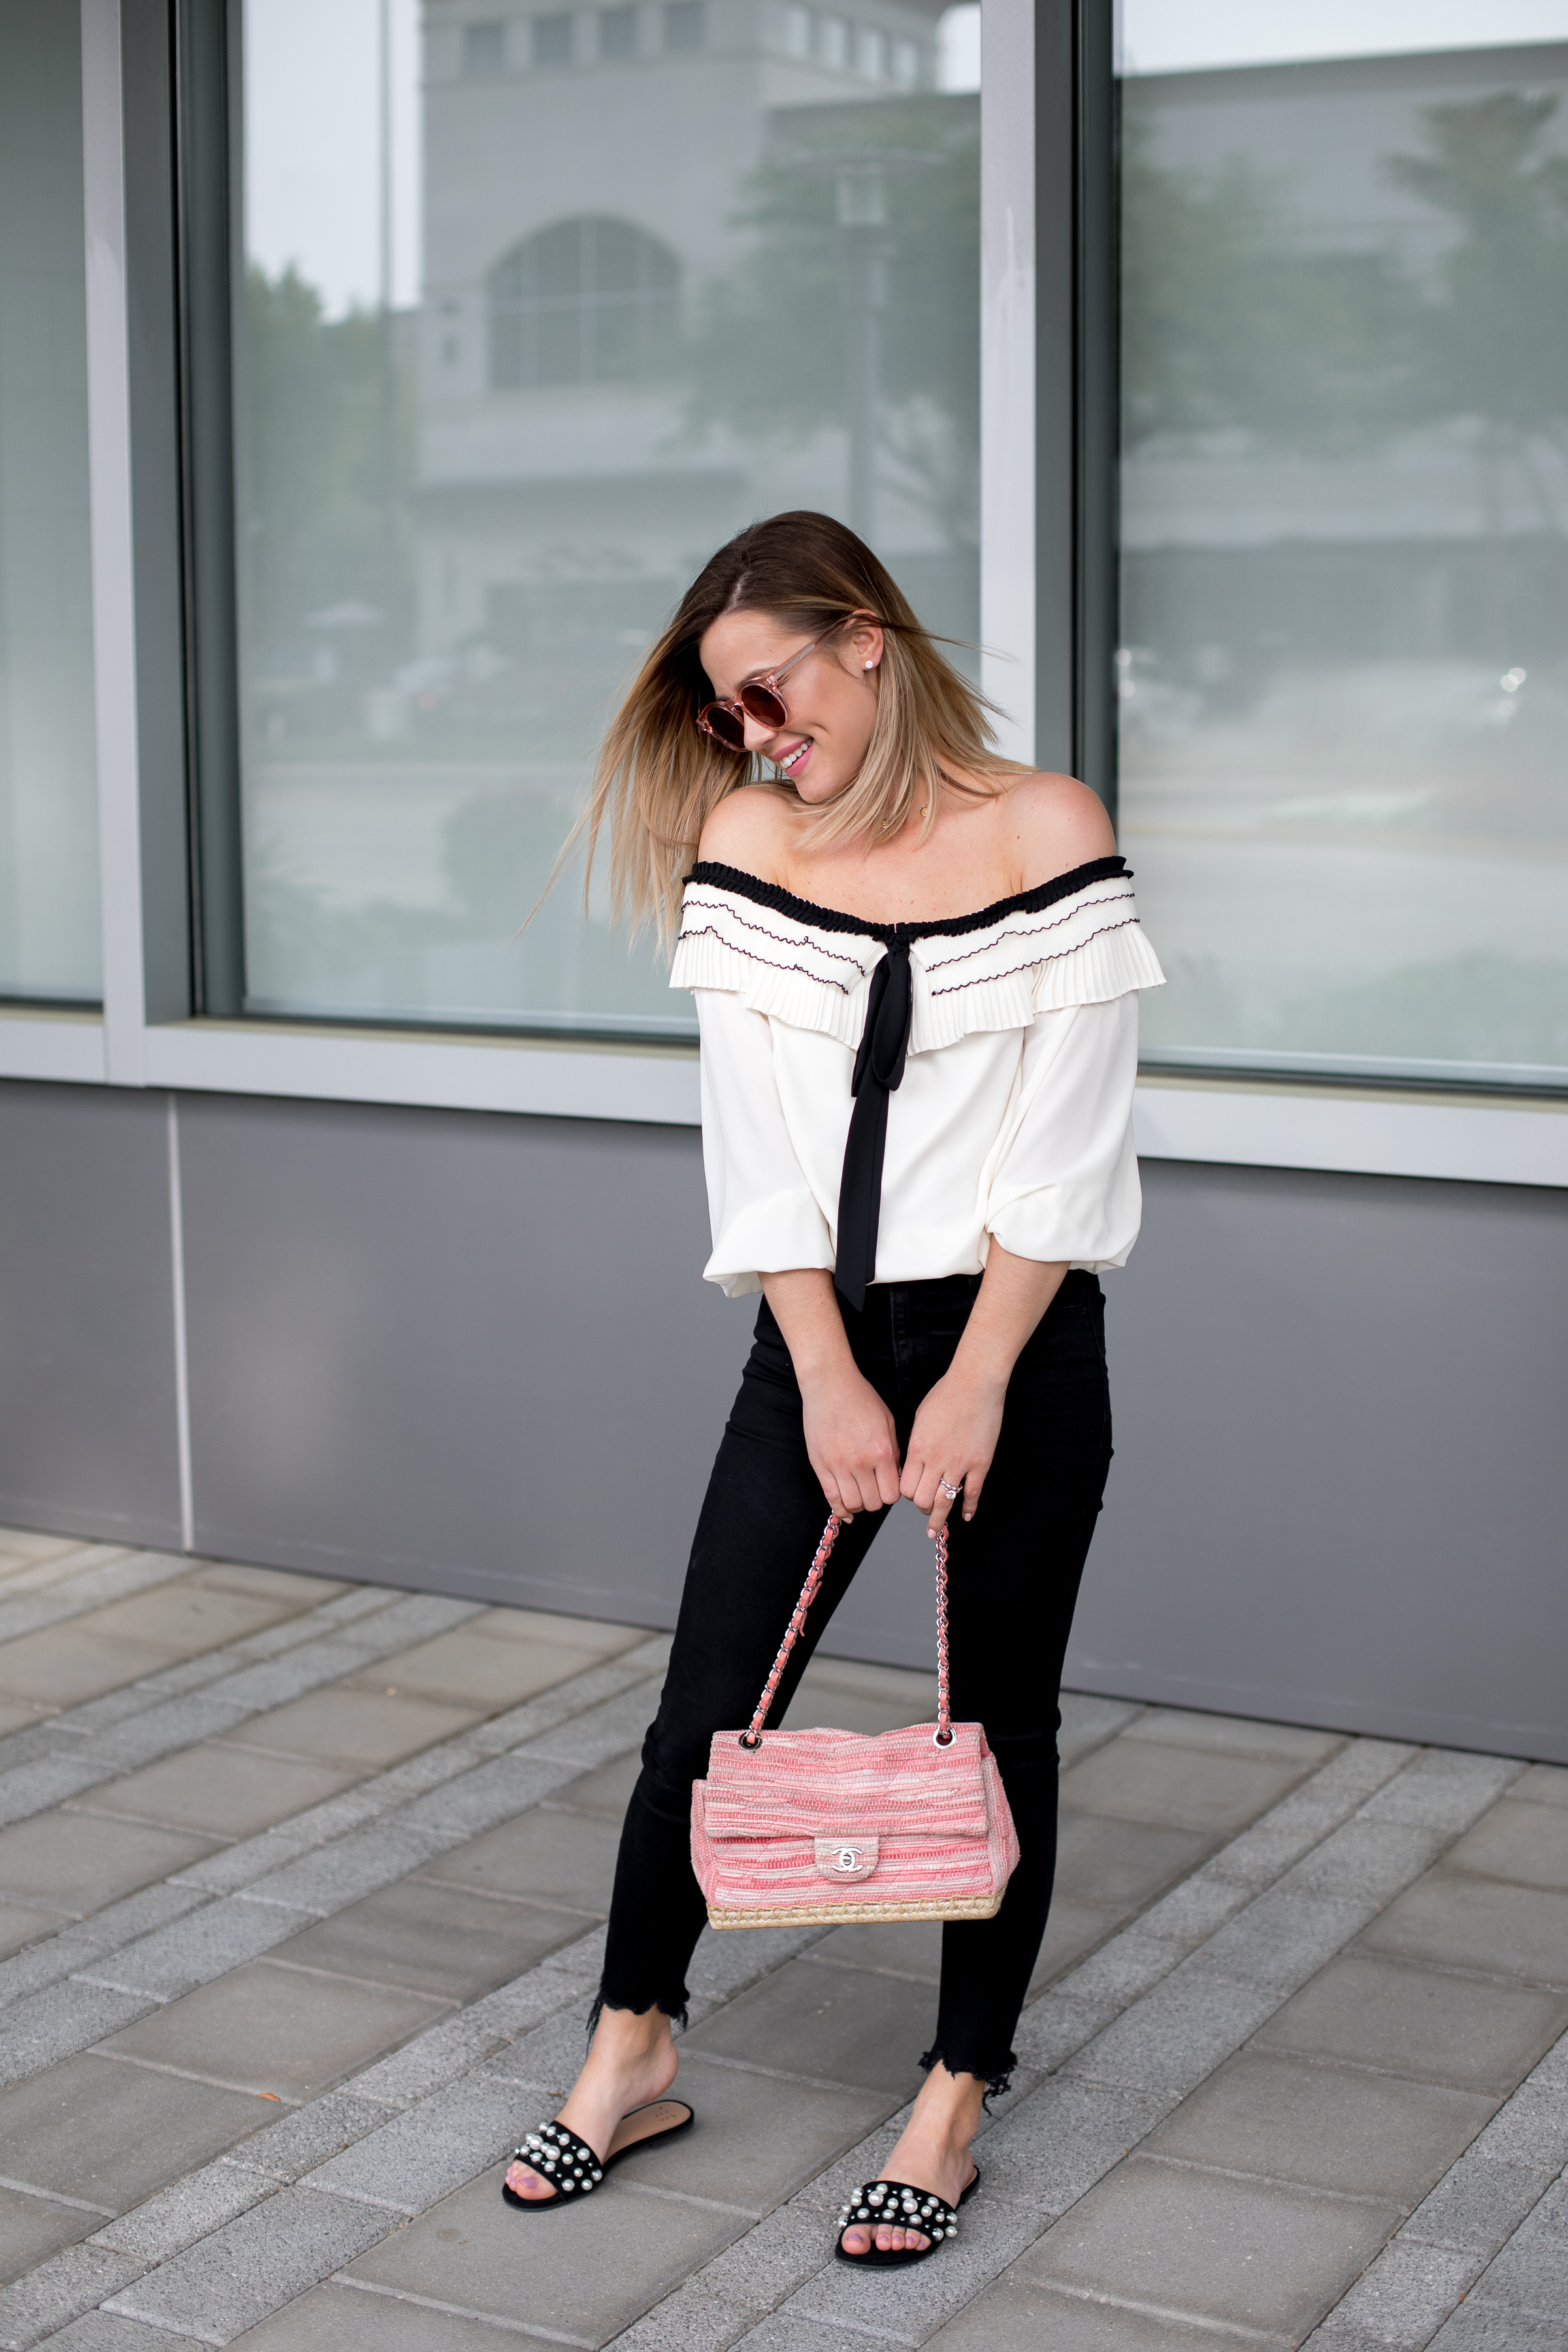 High Waisted Jeans \ ruffle off the shoulder top \ pearl slide sandals \ casual spring outfit \ chic outfit \ Uptown with Elly Brown